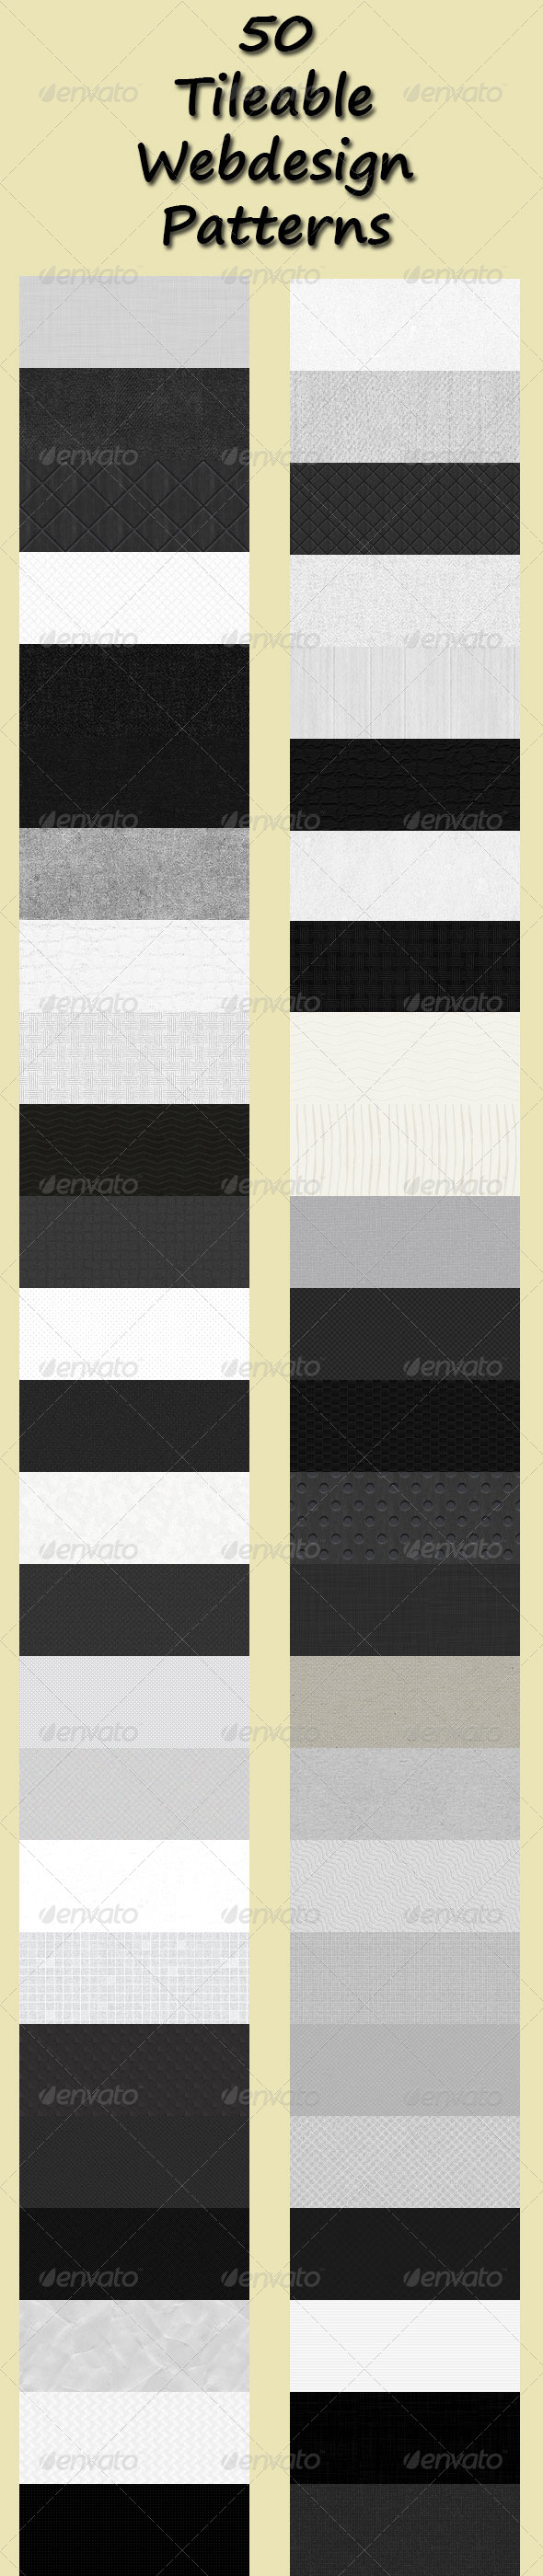 GraphicRiver 50 Tileable Webdesign Patterns 6360664